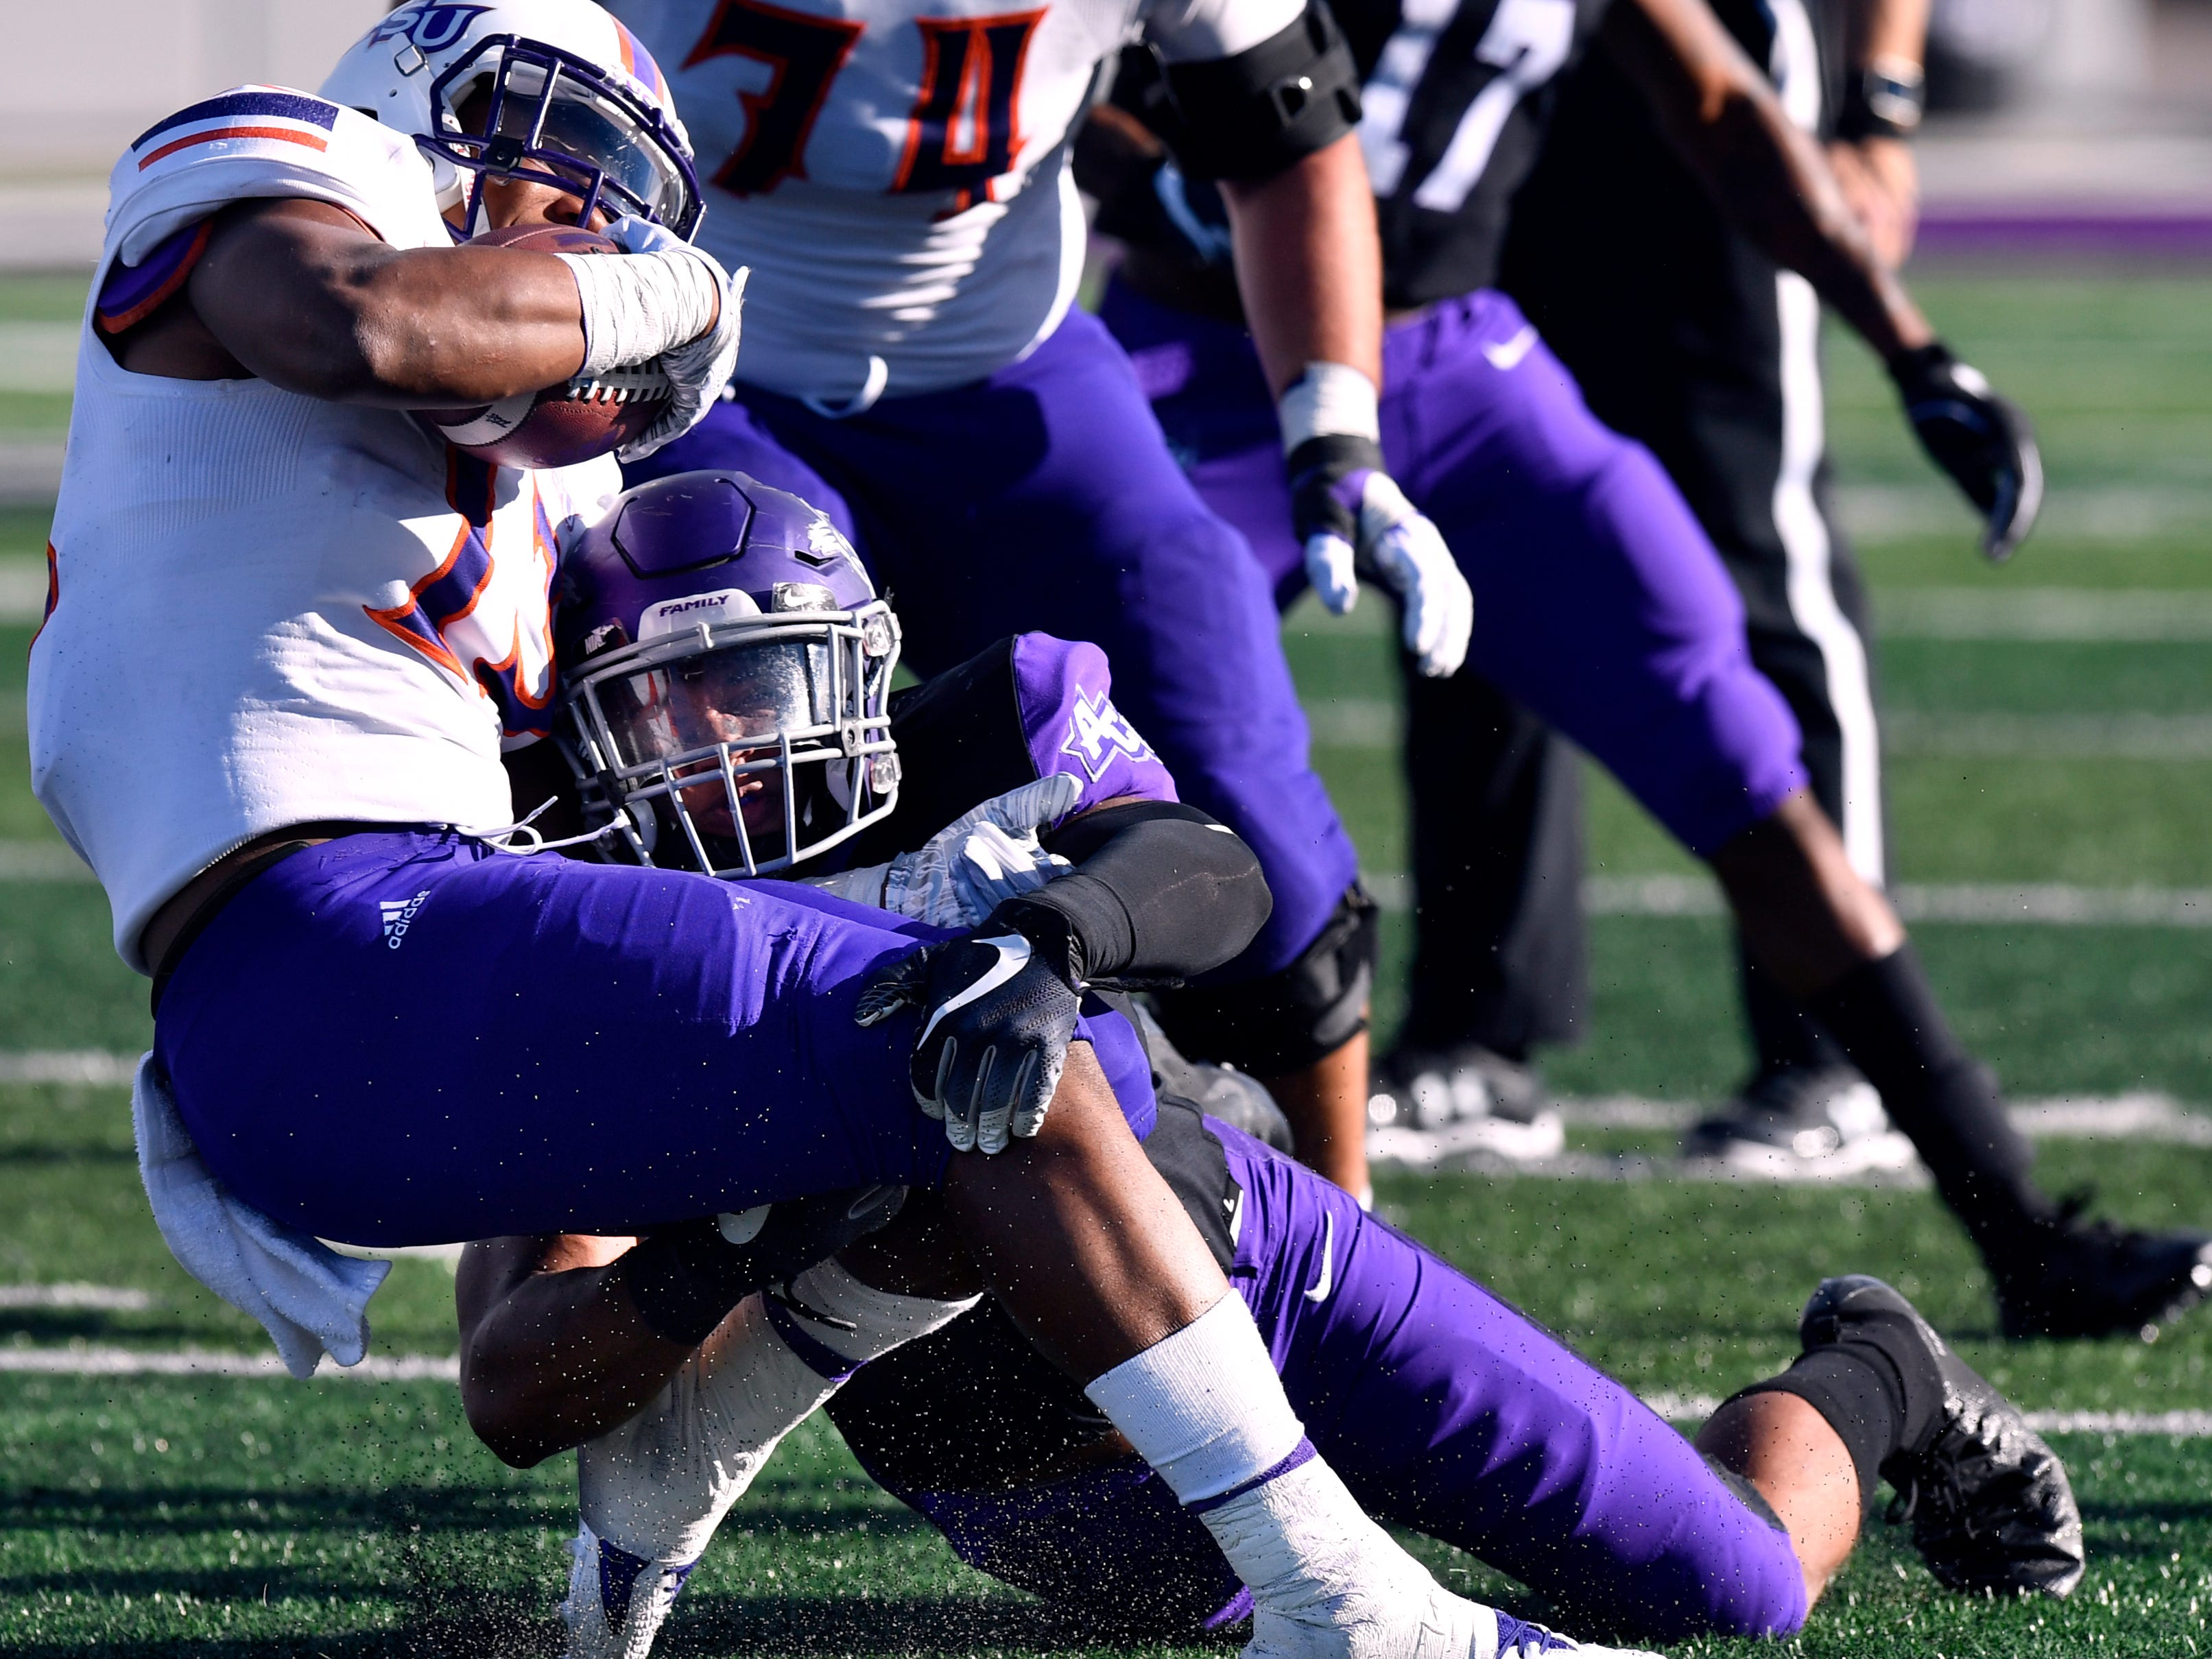 Abilene Christian linebacker Jeremiah Chambers tackles Northwestern State running back Stadford Anderson during Saturday's game Nov. 3, 2018. Final score was 49-47, Abilene Christian University.